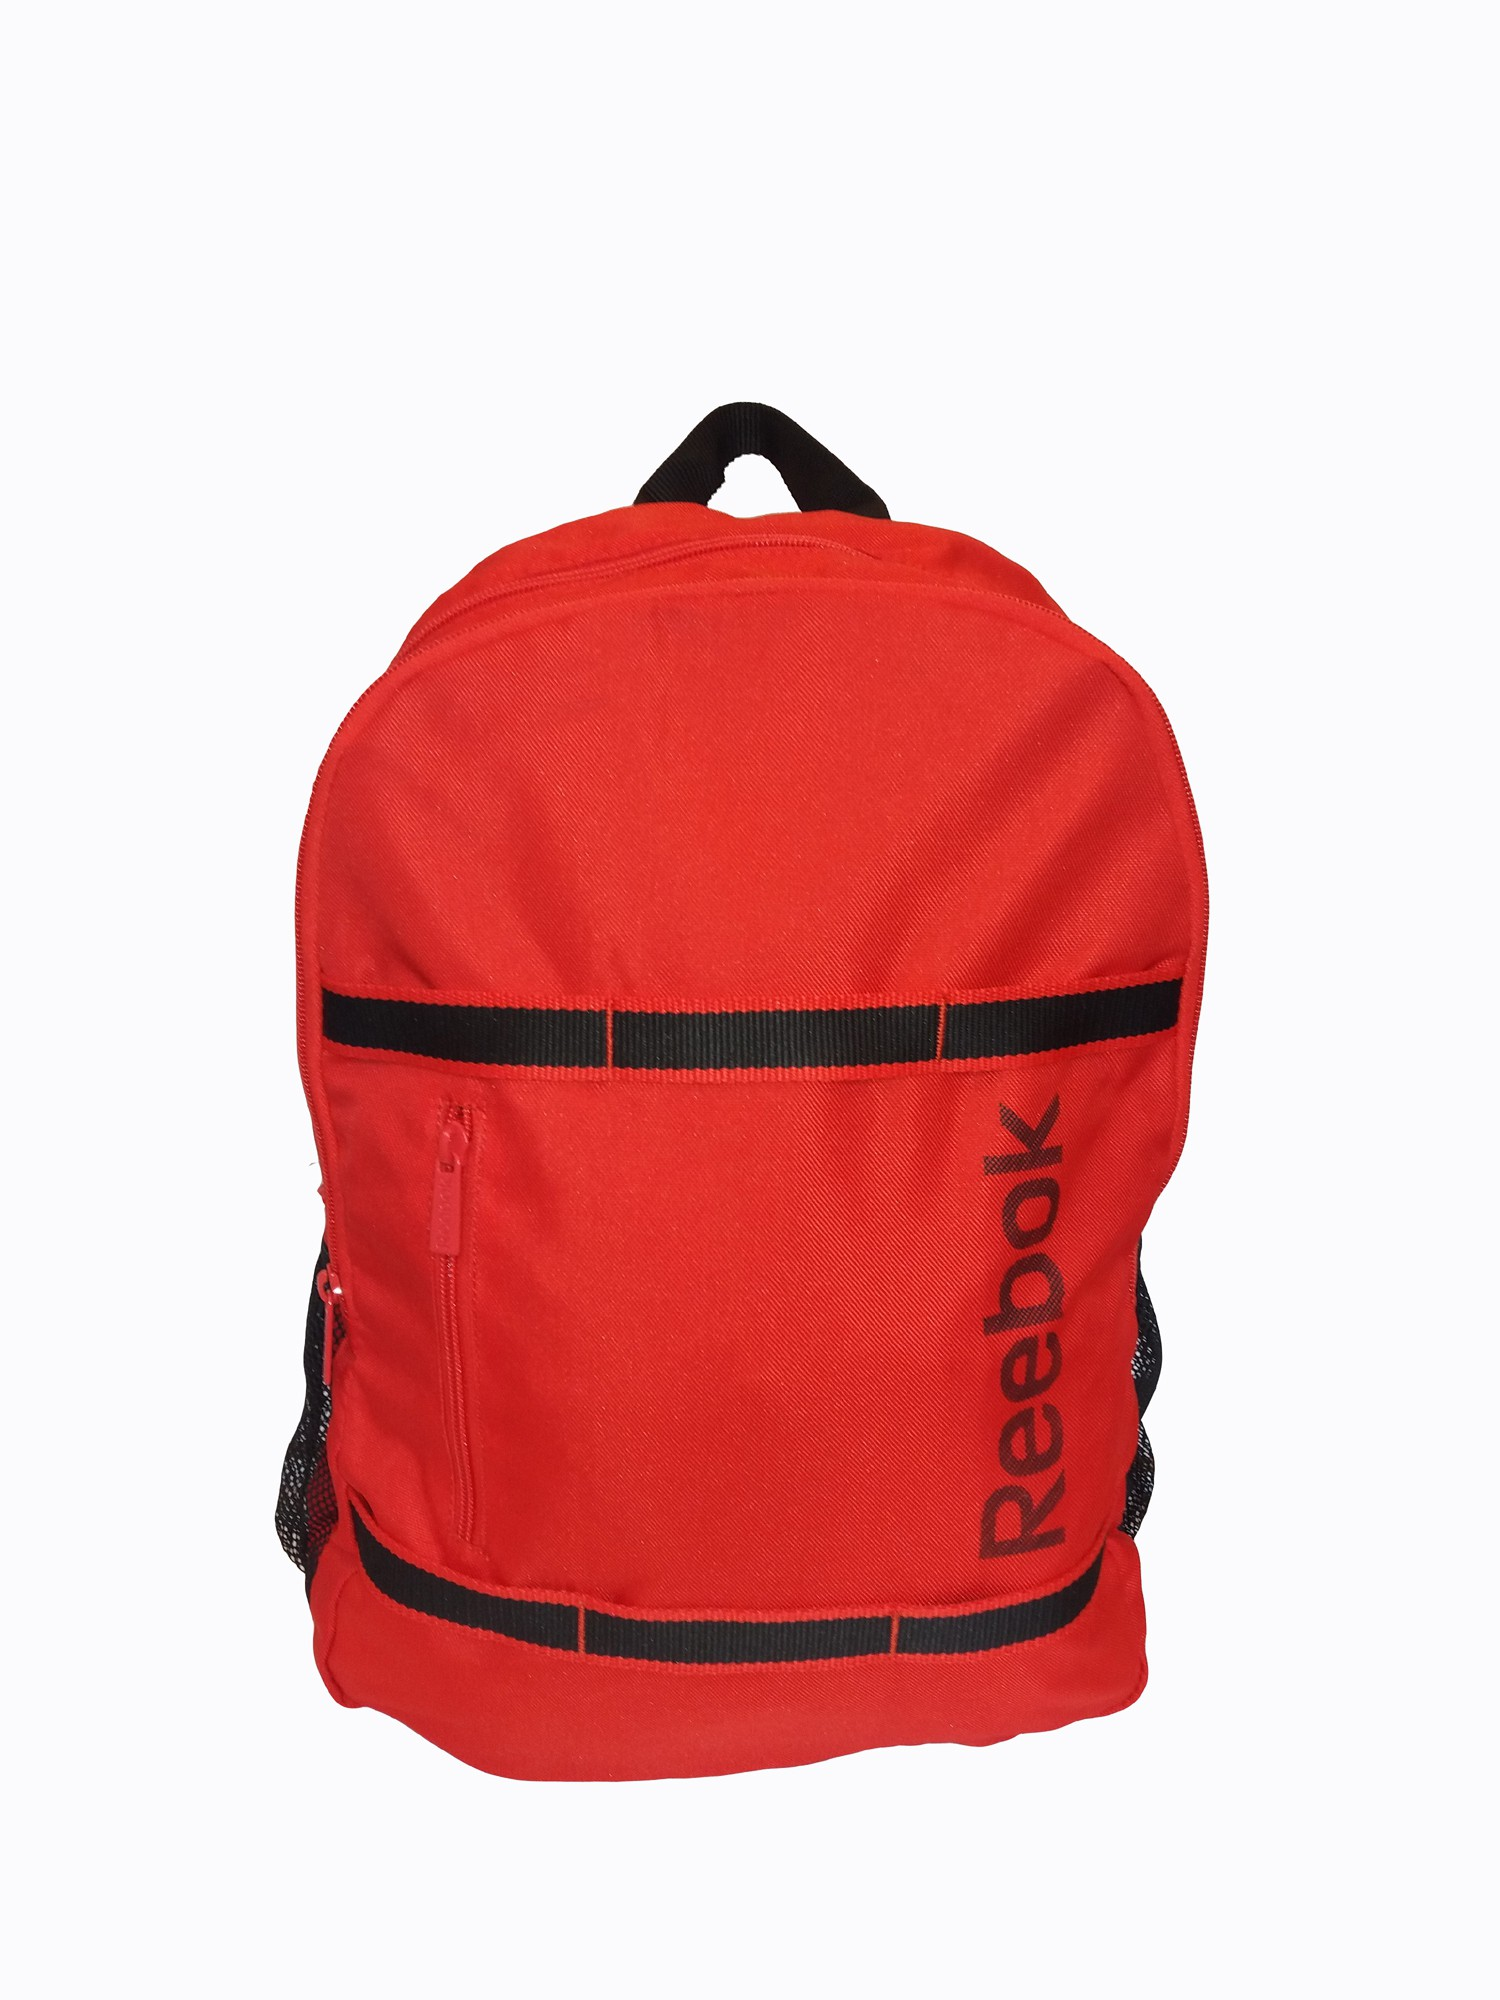 Reebok Bts Junscol BP 21 L Backpack(Red) Price in India 14 Feb 2019 ...